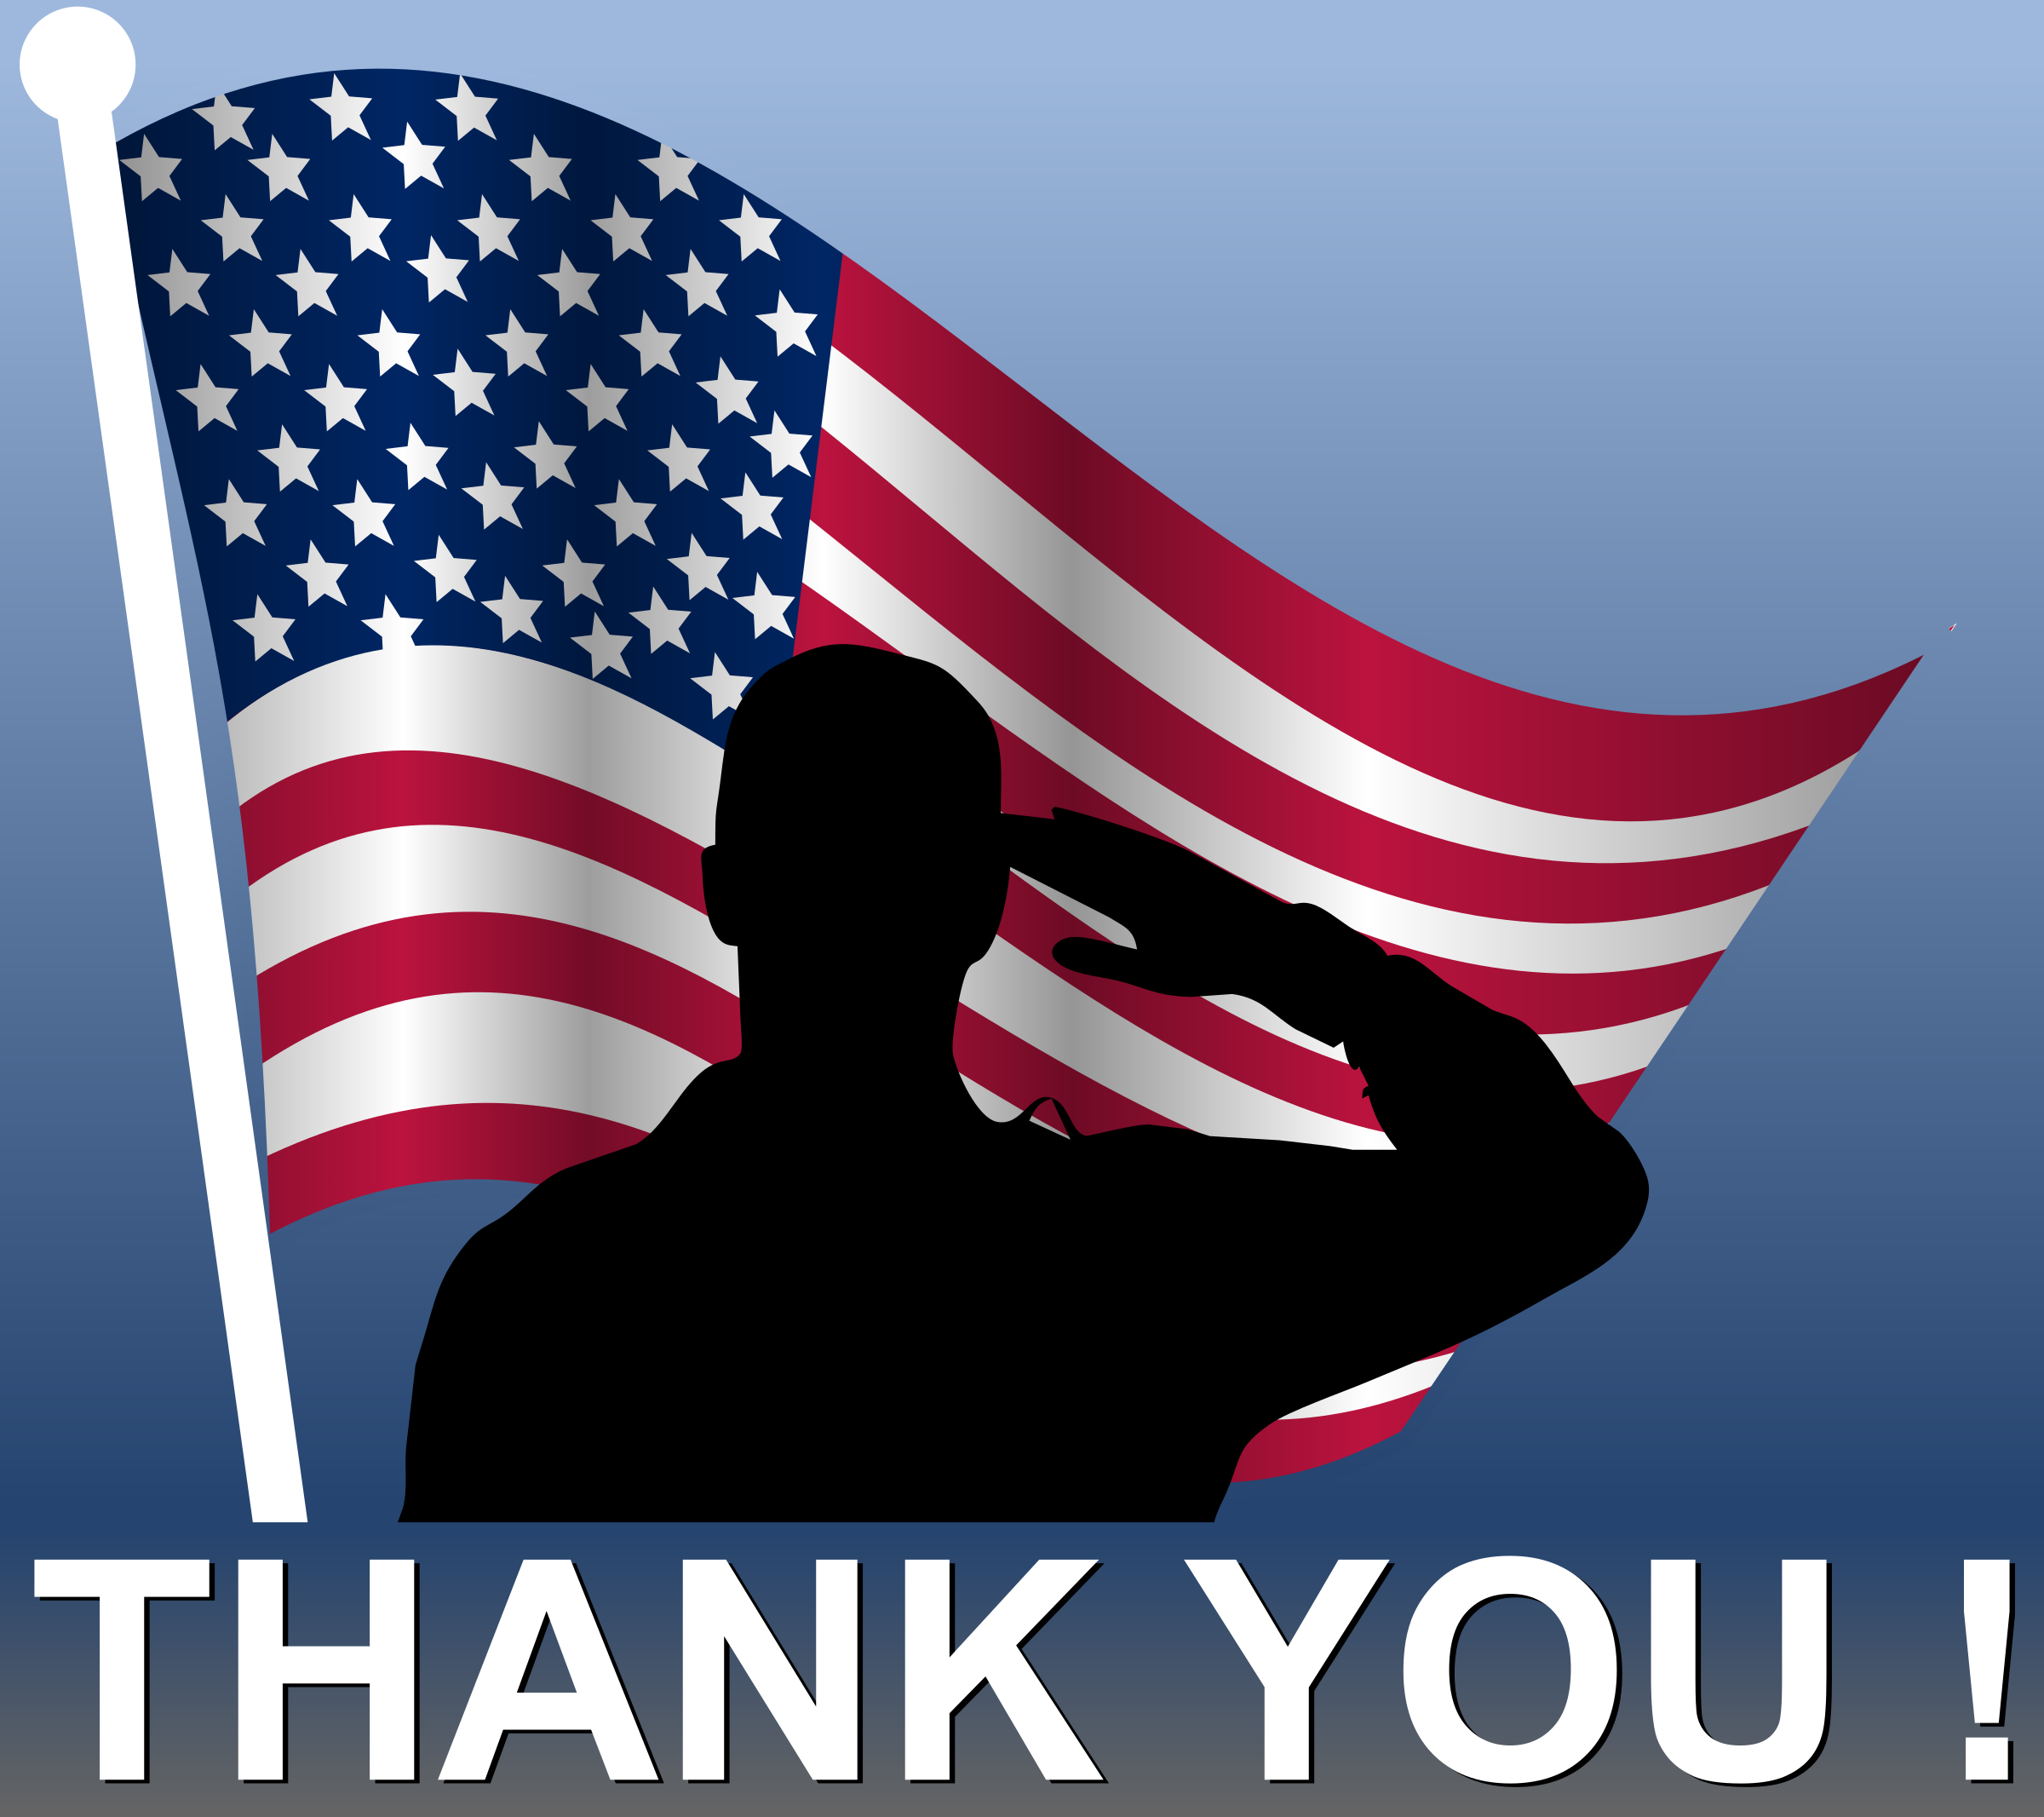 Memorial Day - Thank You! by cyberscooty